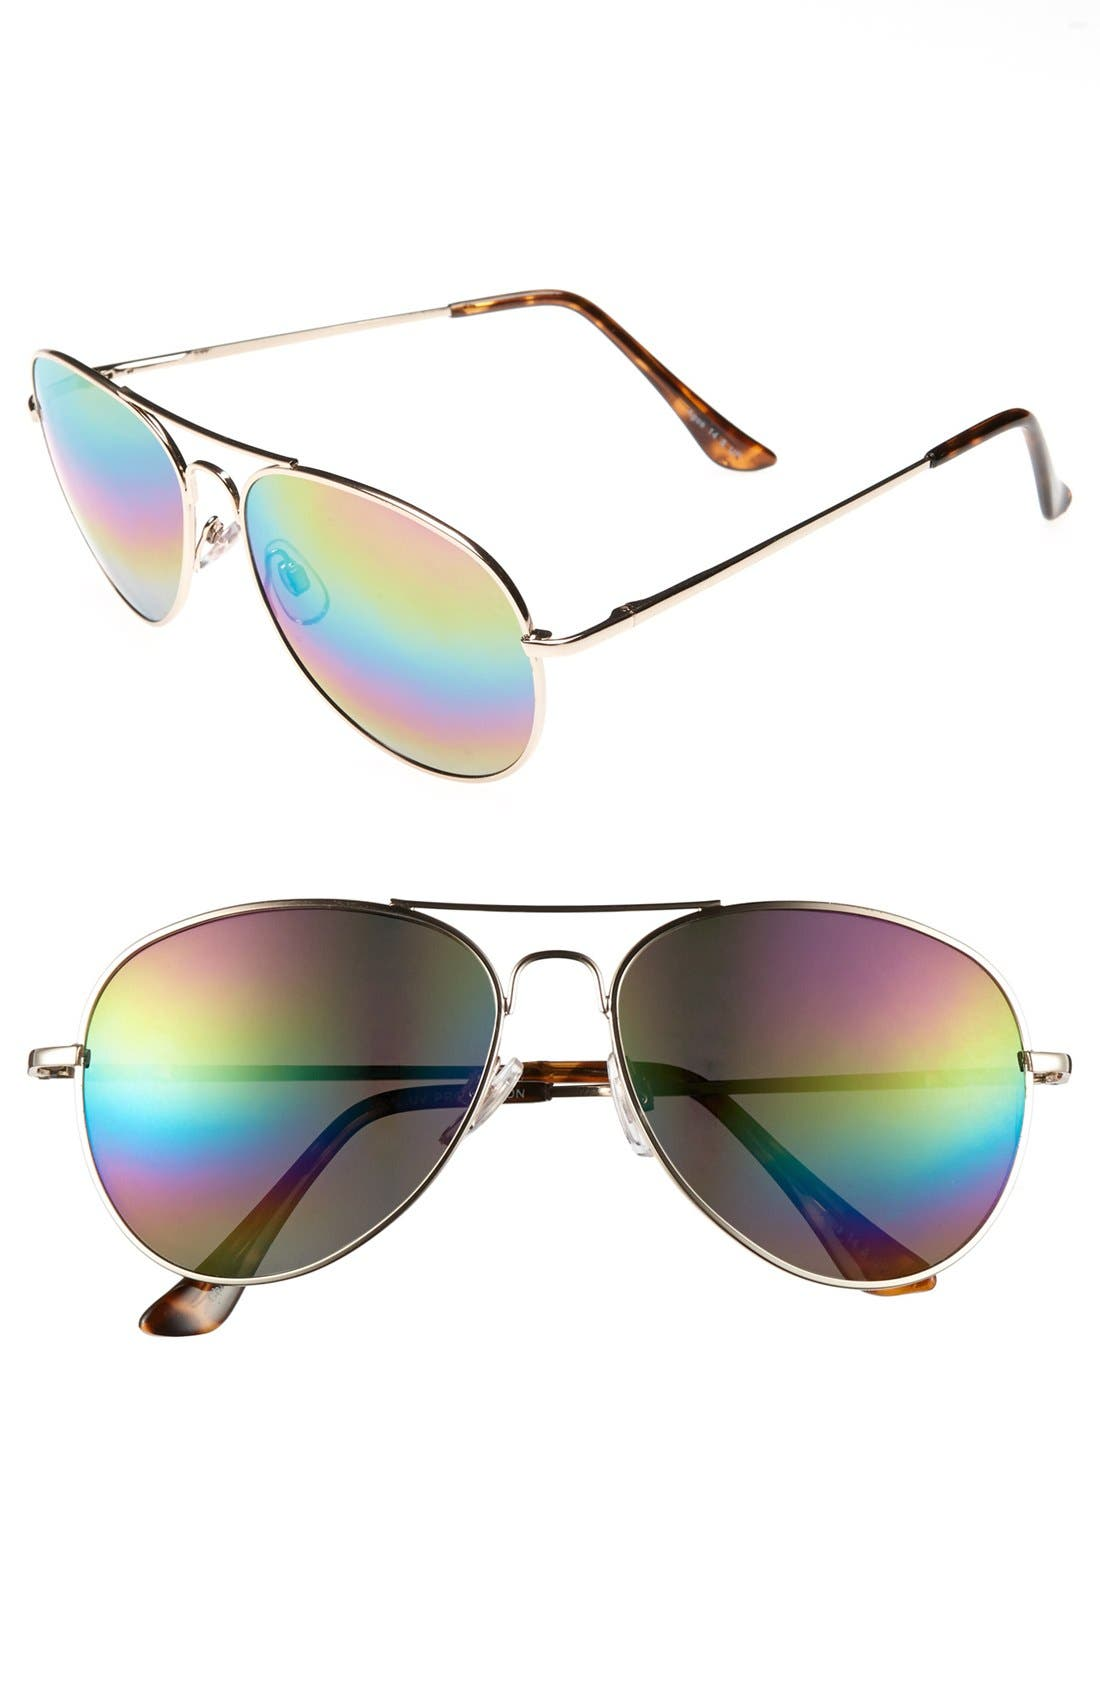 Alternate Image 1 Selected - Fantas Eyes 56mm Aviator Sunglasses (Juniors)